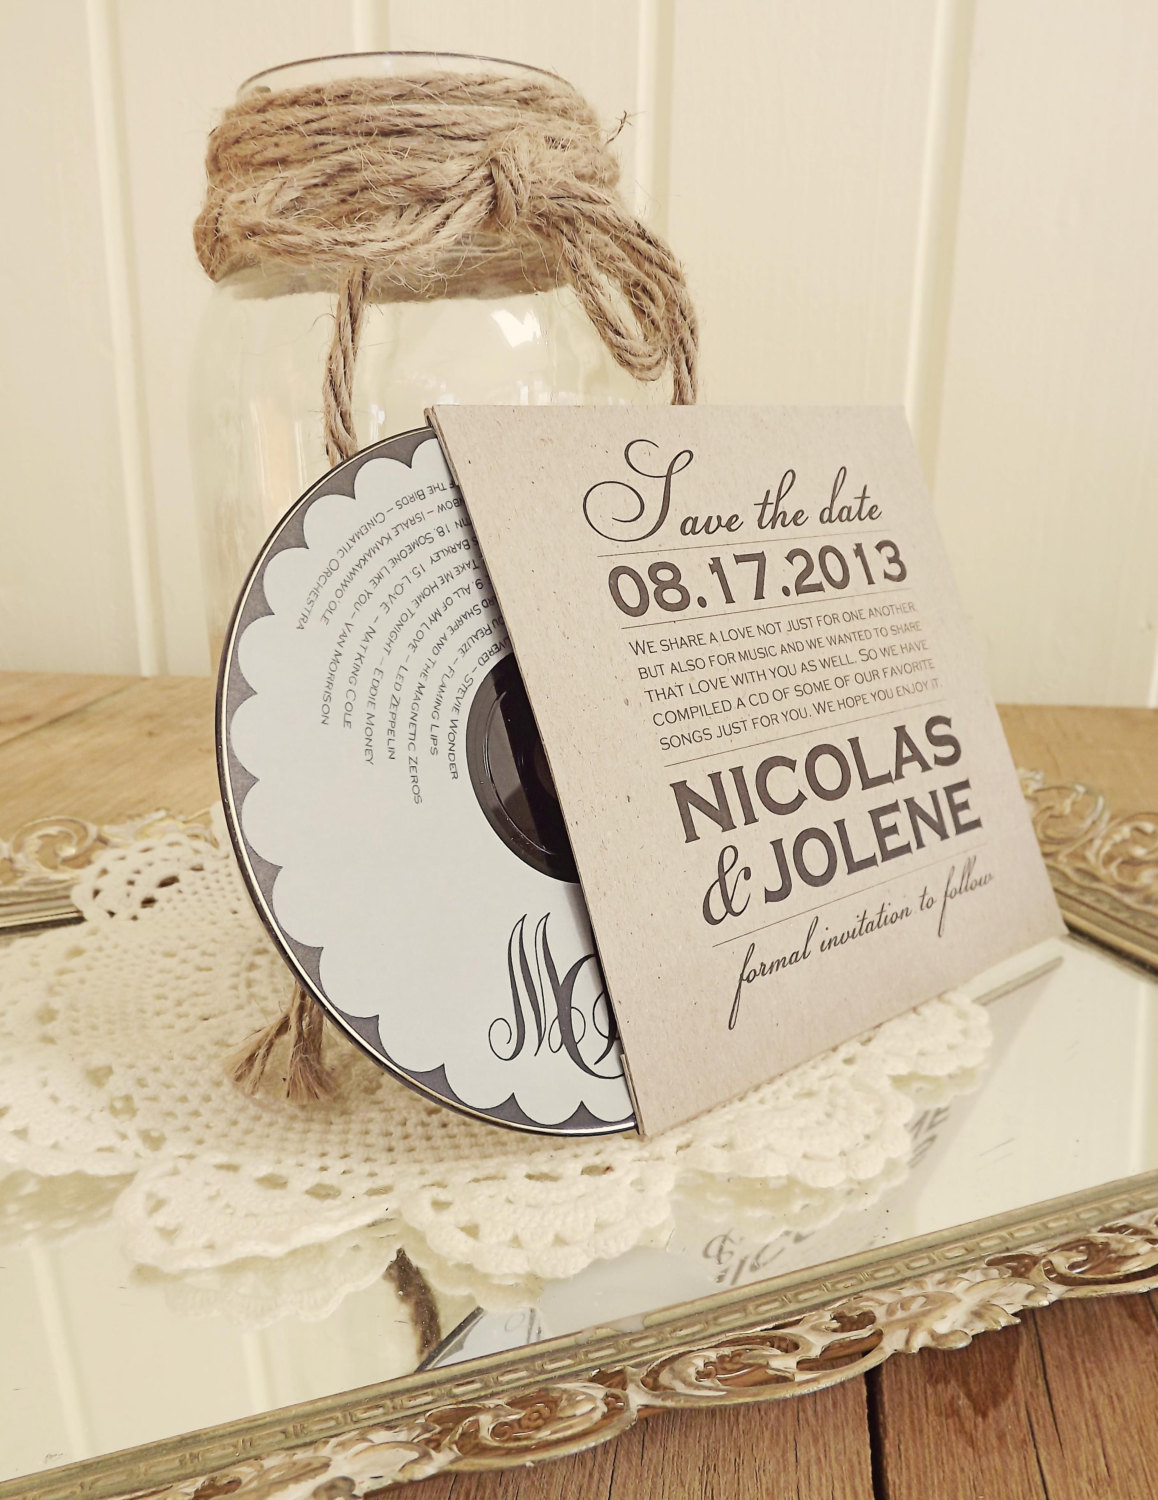 Unique Wedding Ideas.14 Unique Wedding Ideas Modwedding